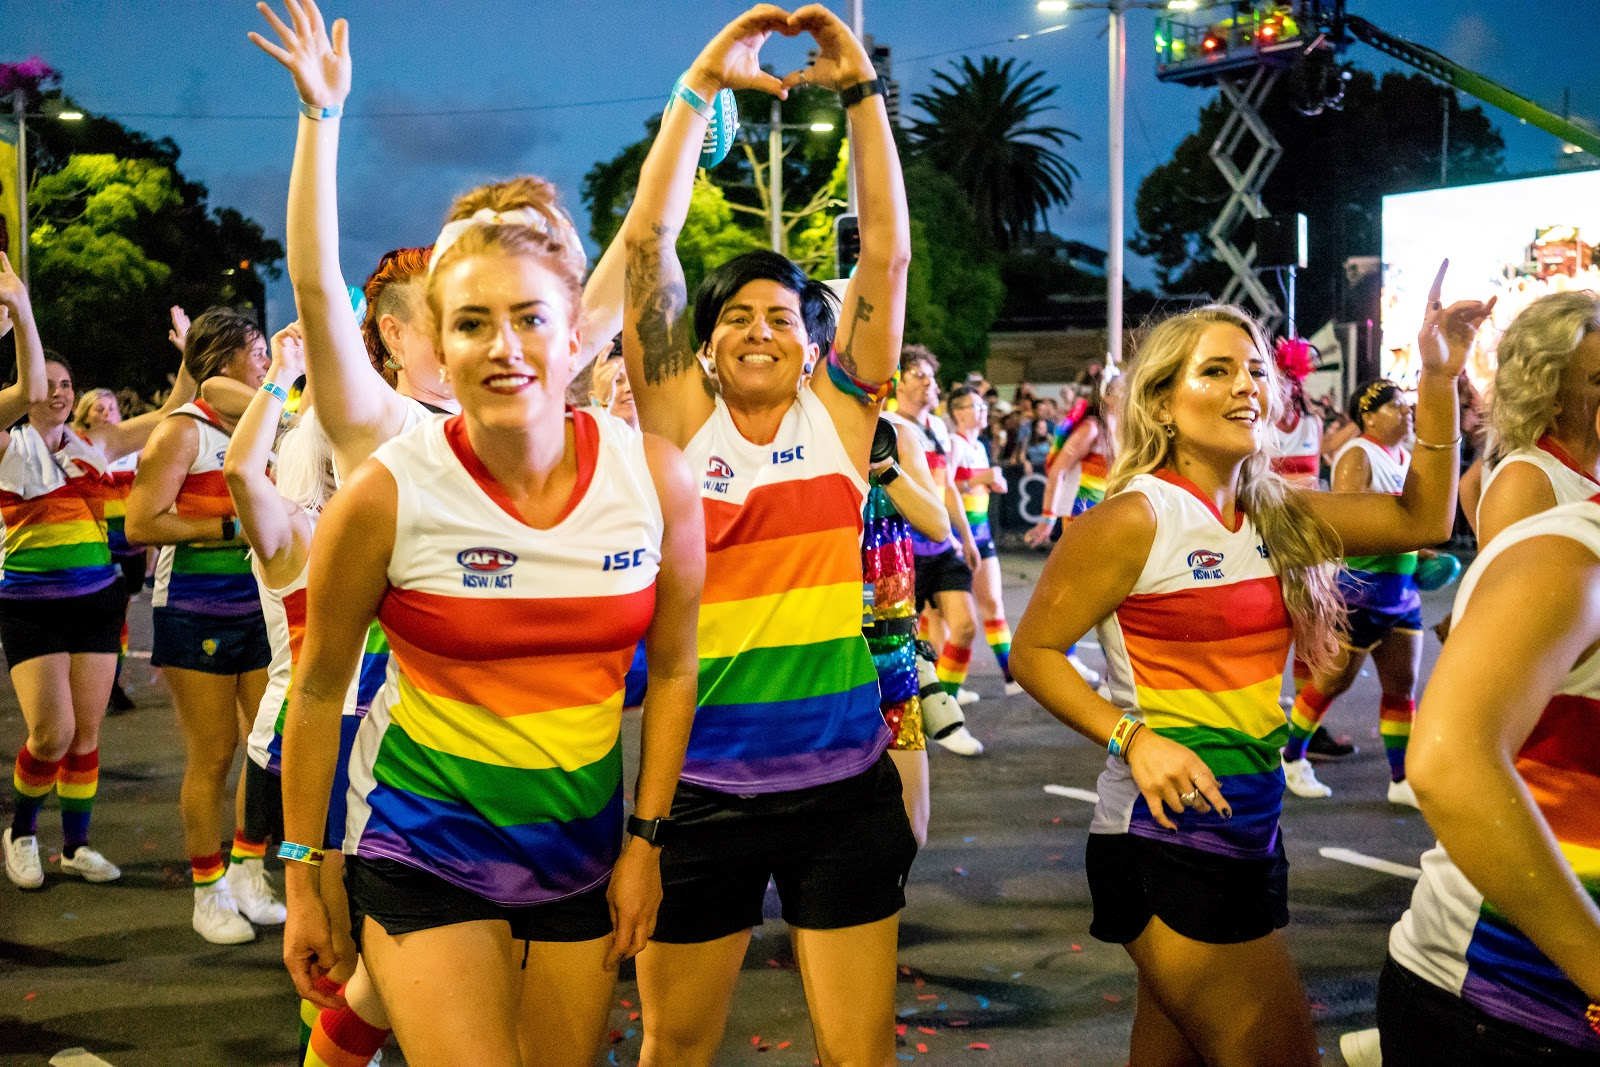 Photo of Mardi Gras parade attendees in colourful AFL uniform